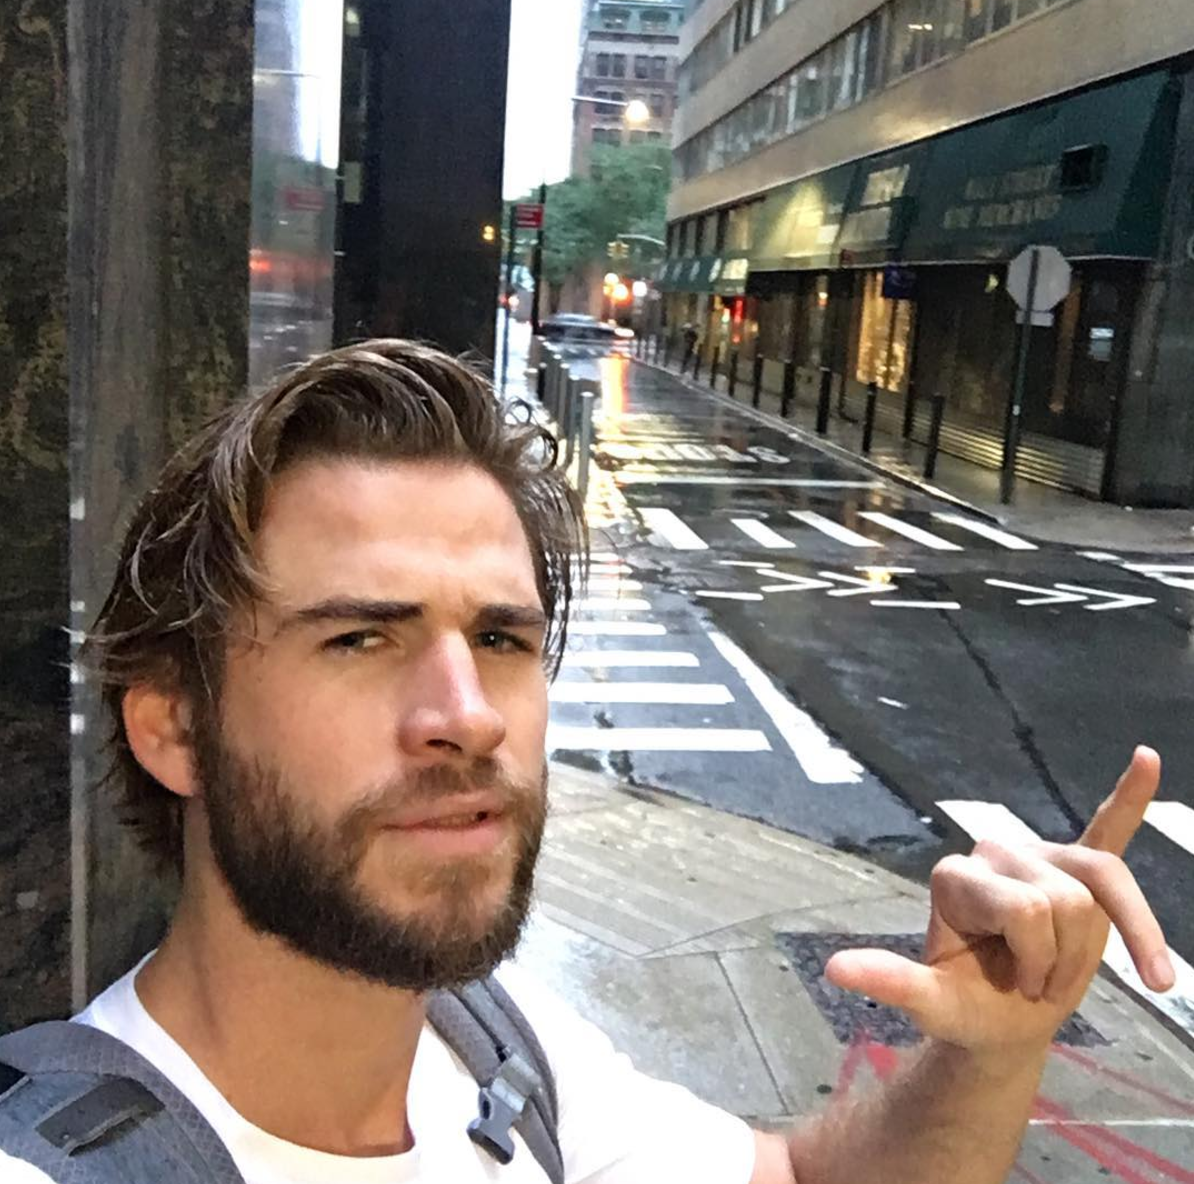 107m Followers 160 Following 147 Posts See Instagram photos and videos from Liam Hemsworth liamhemsworth